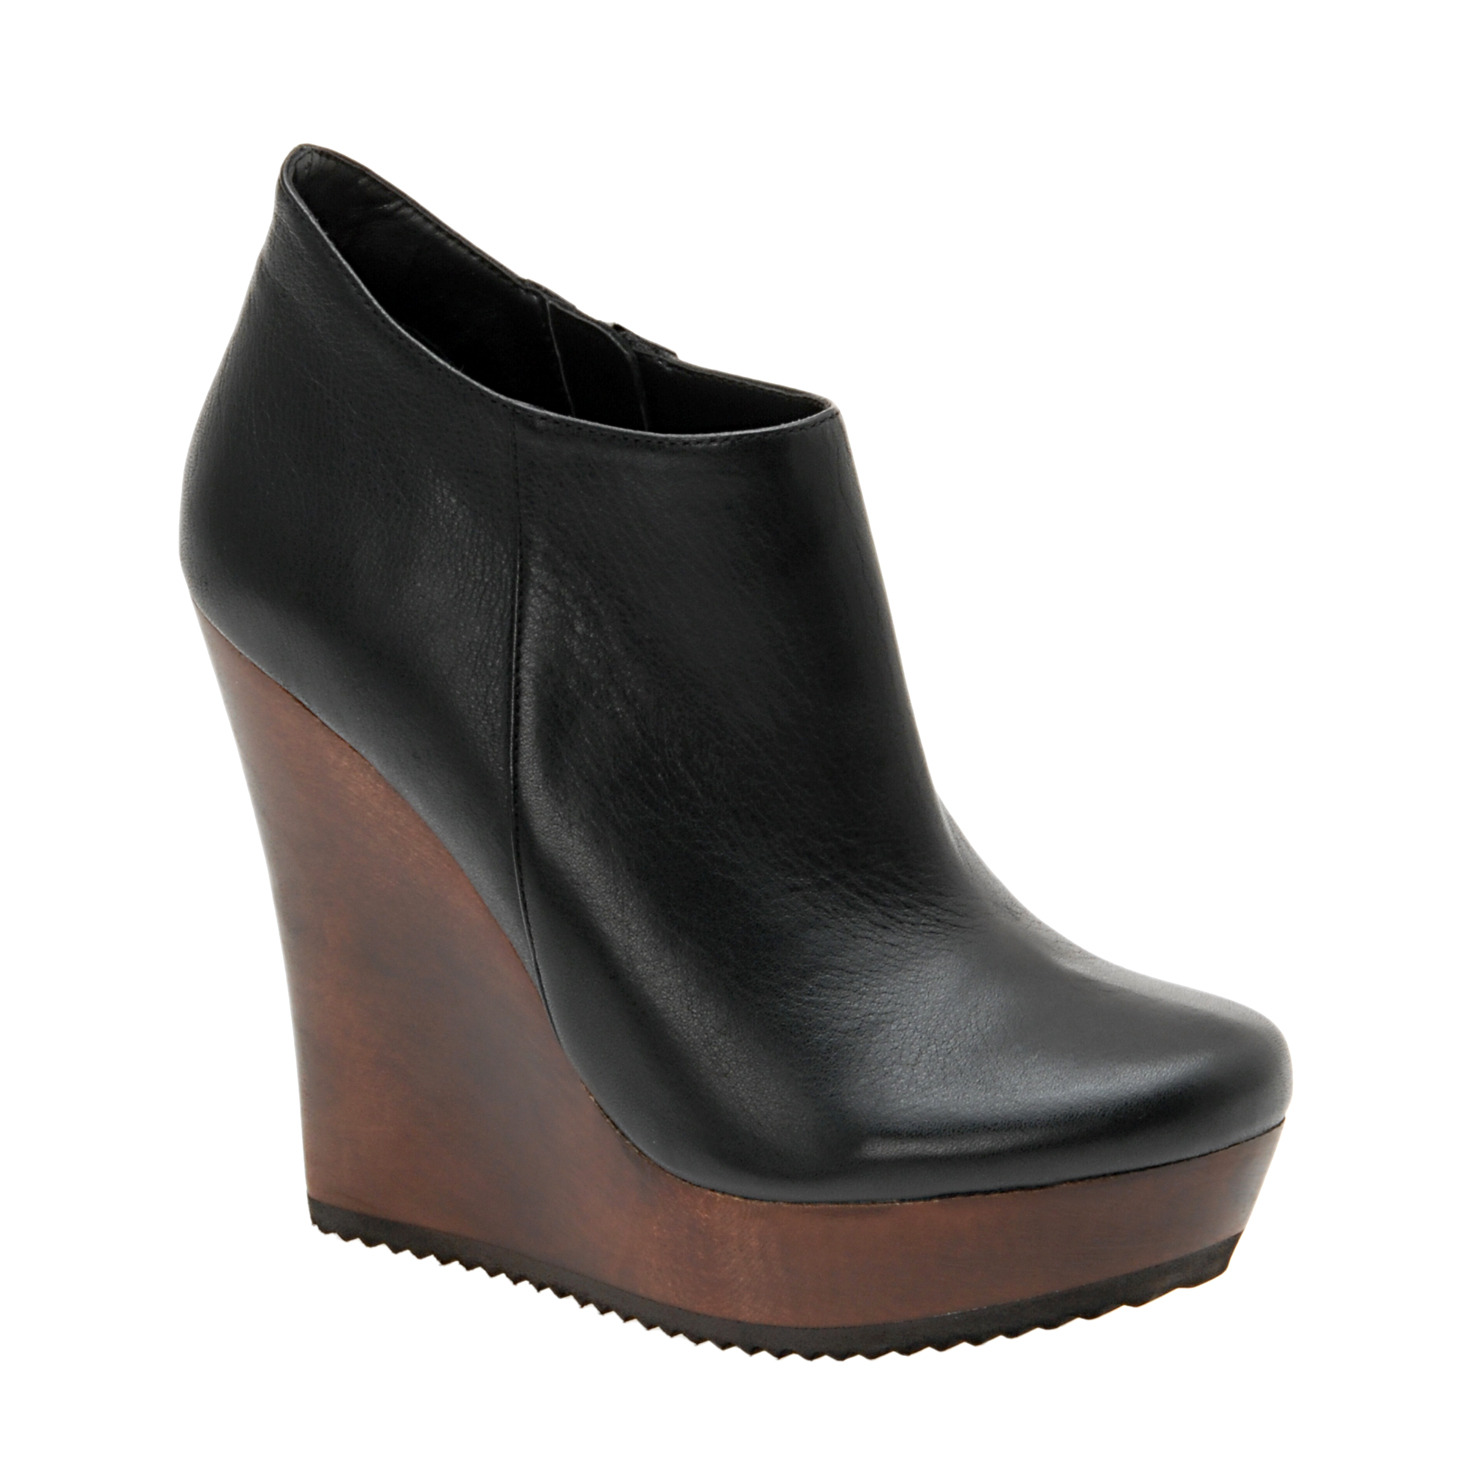 Black Women's Booties. Clothing & Shoes / Shoes / Women's Shoes / Women's Booties. of Results. Journee Collection Women's 'Enter' Faux Suede Wedge Booties. 77 Reviews. Journee Collection Women's 'Wen' Black/Blue/Grey Faux Suede Lace-up Ankle Booties. 22 Reviews. SALE ends soon ends in 5 hours.